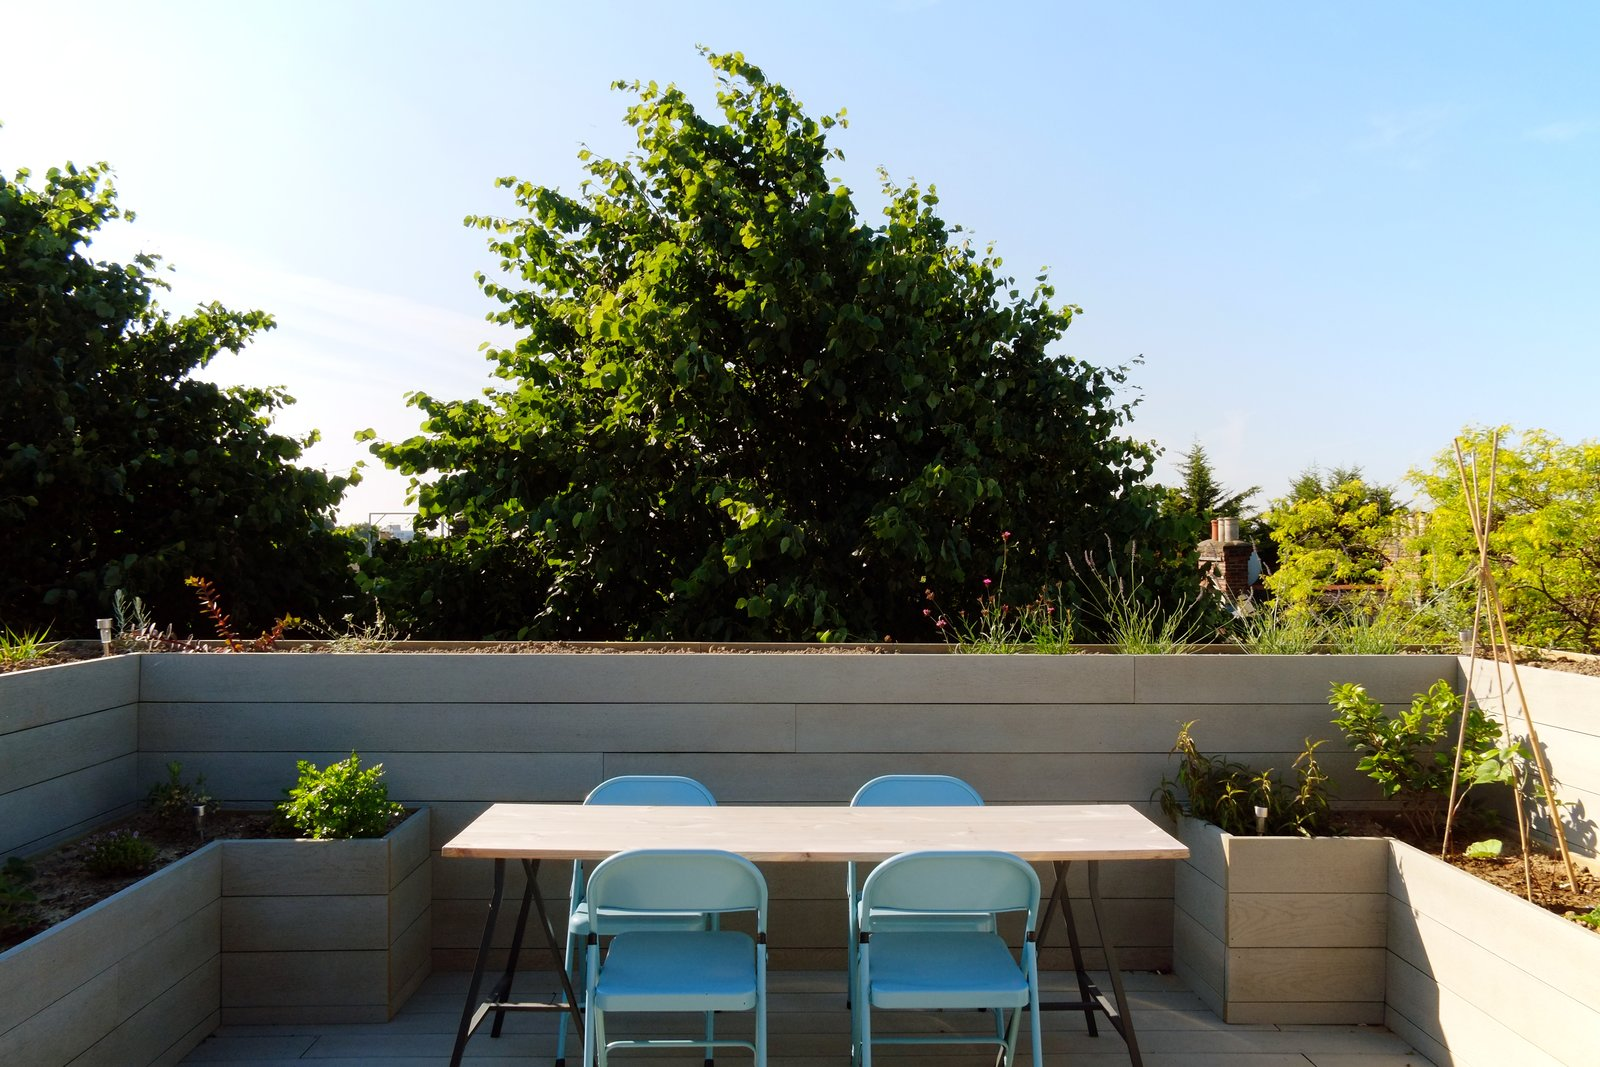 Outdoor, Vegetables, Decking, Rooftop, Raised Planters, Flowers, and Trees Private and secluded terrace with view across London in the tree tops  Best Outdoor Vegetables Decking Photos from The Science Lab